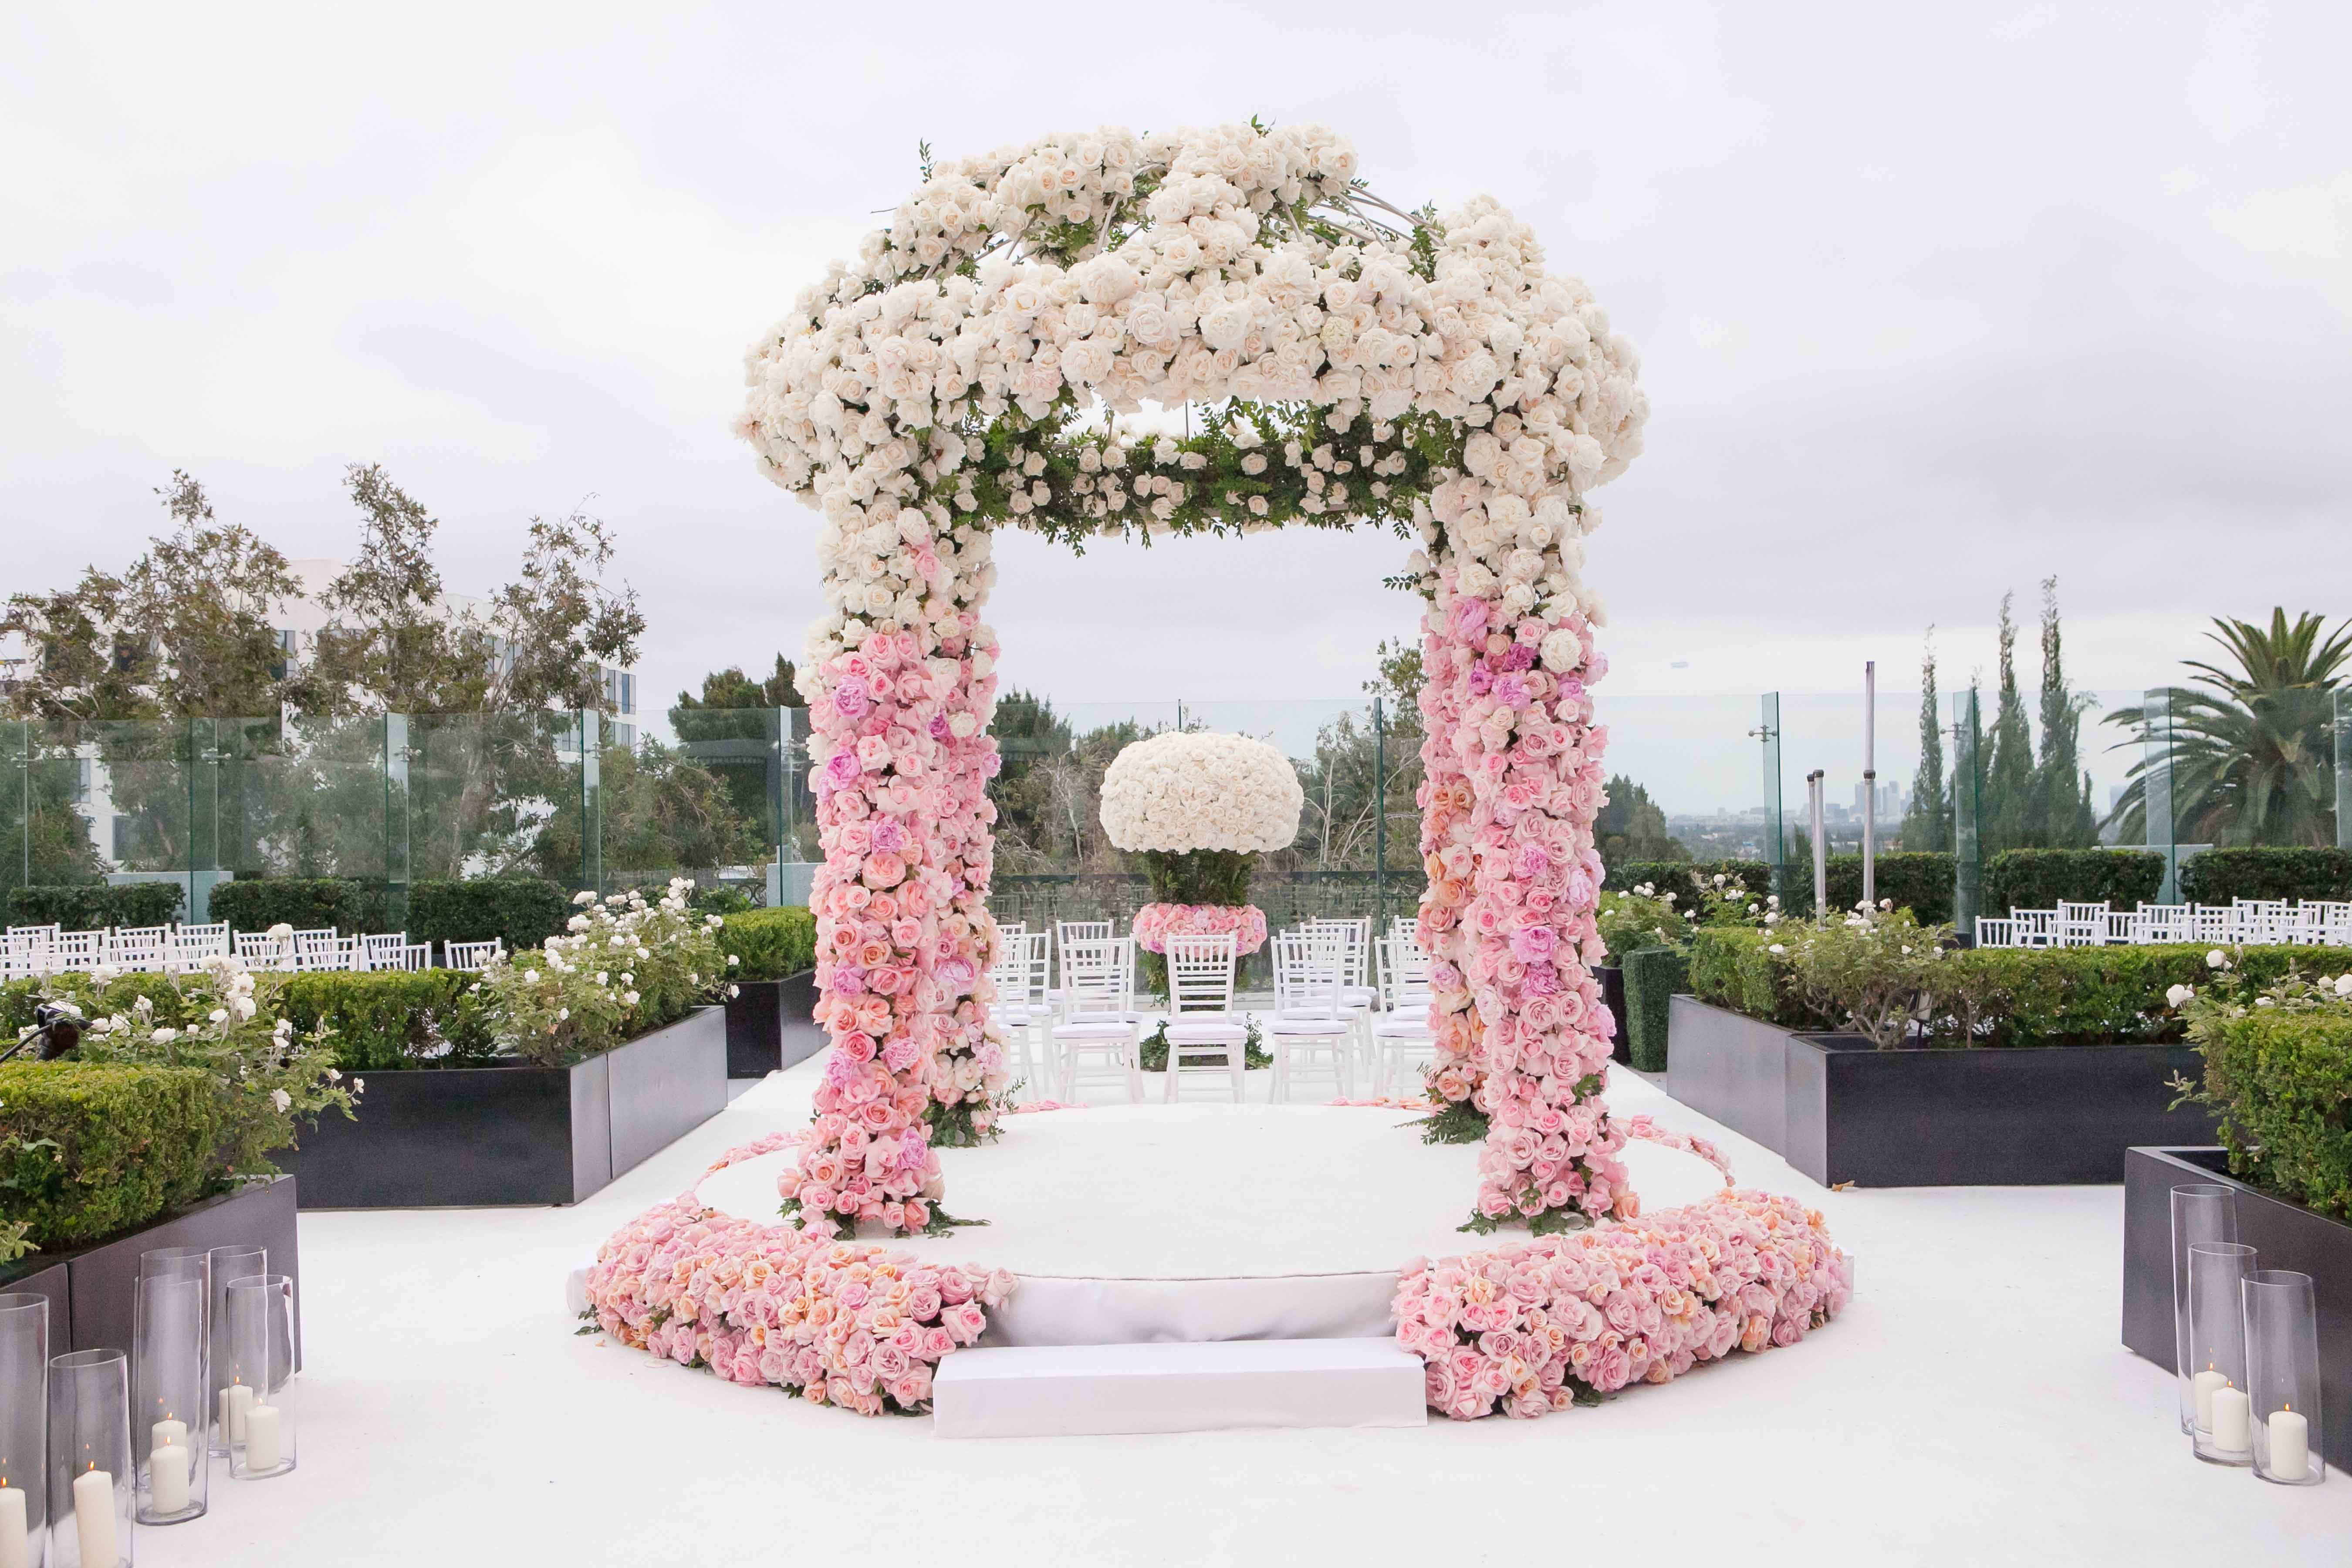 Pink and white flowers ceremony arch for outdoor wedding Los Angeles The London gay wedding Inside Weddings winter 2017 issue